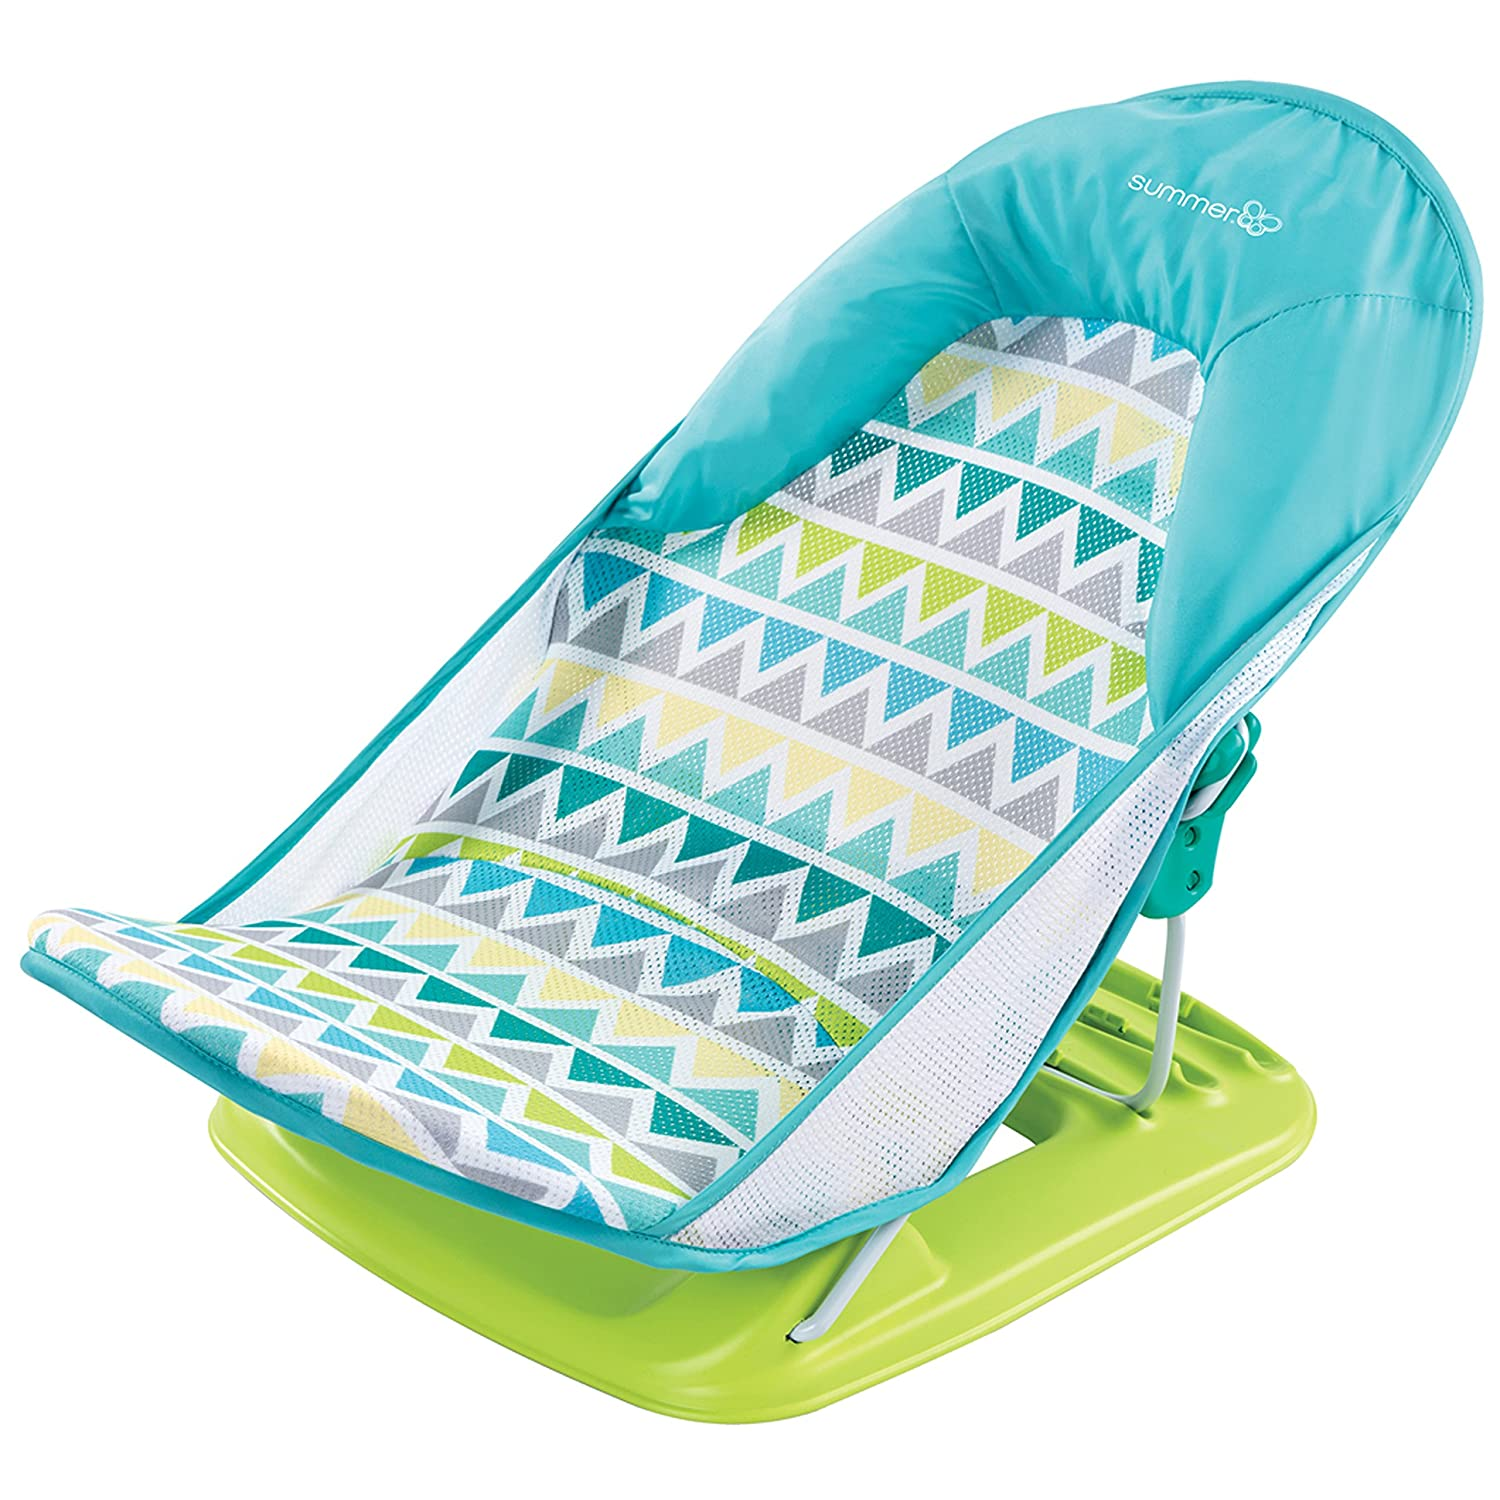 Bubble Stripes Summer Infant Deluxe Baby Bather